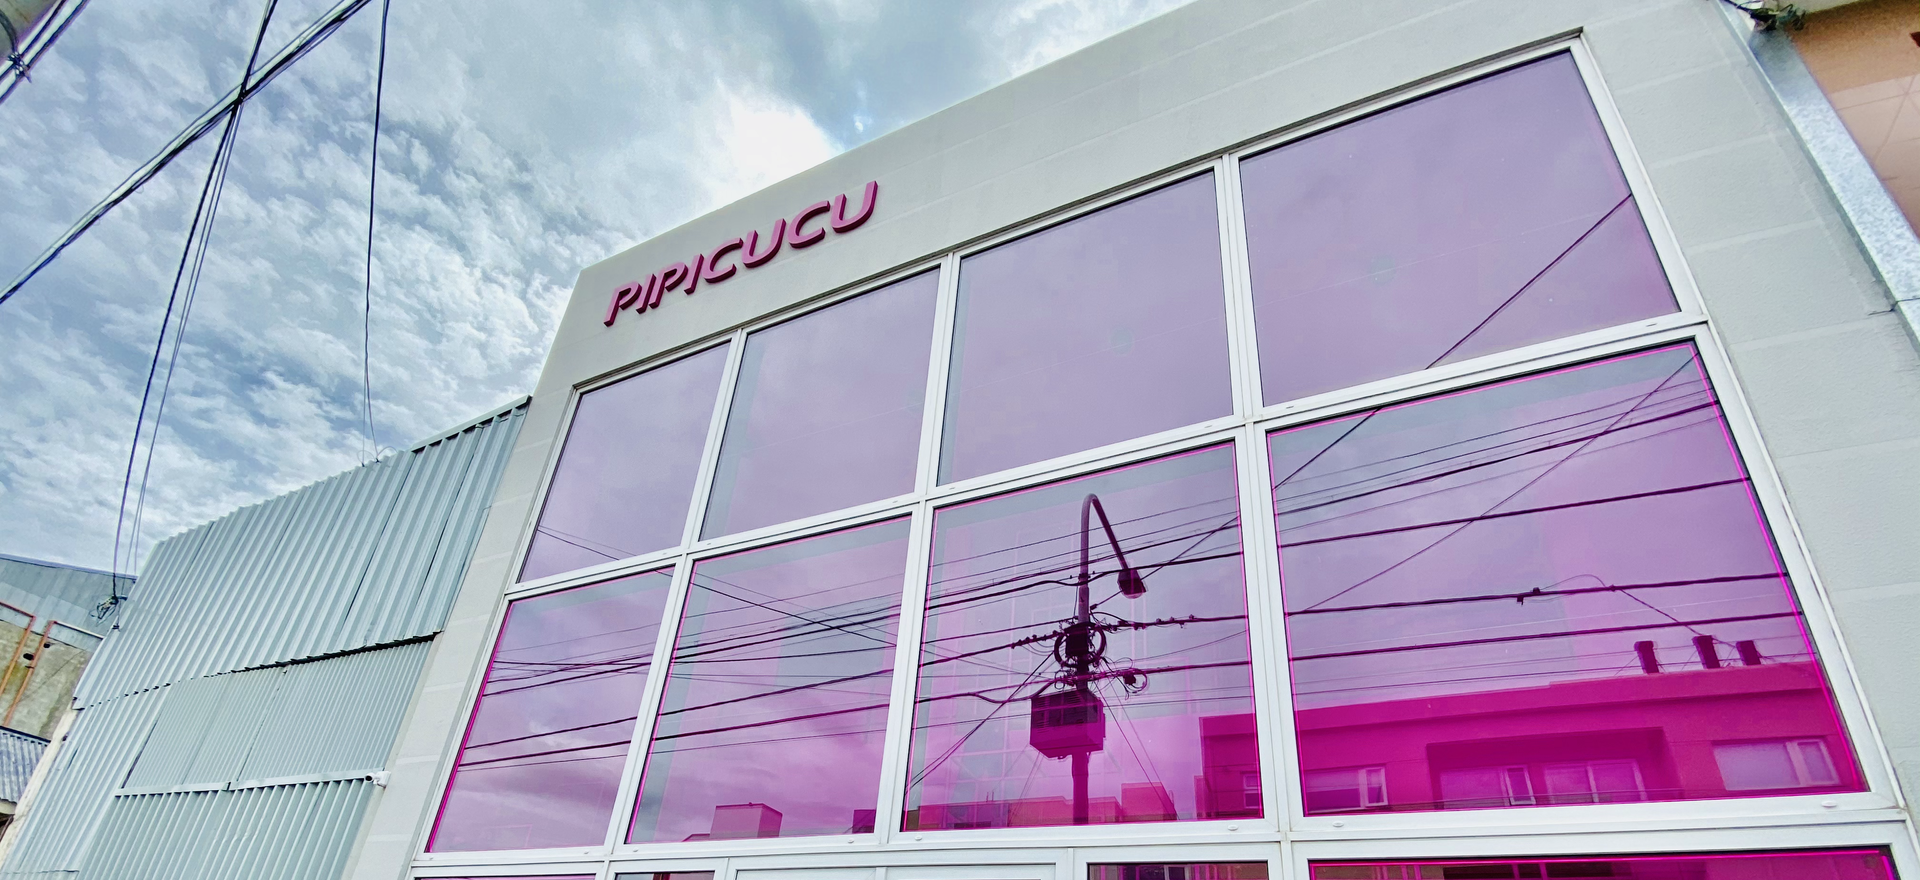 PIPICUCU - Local comercial